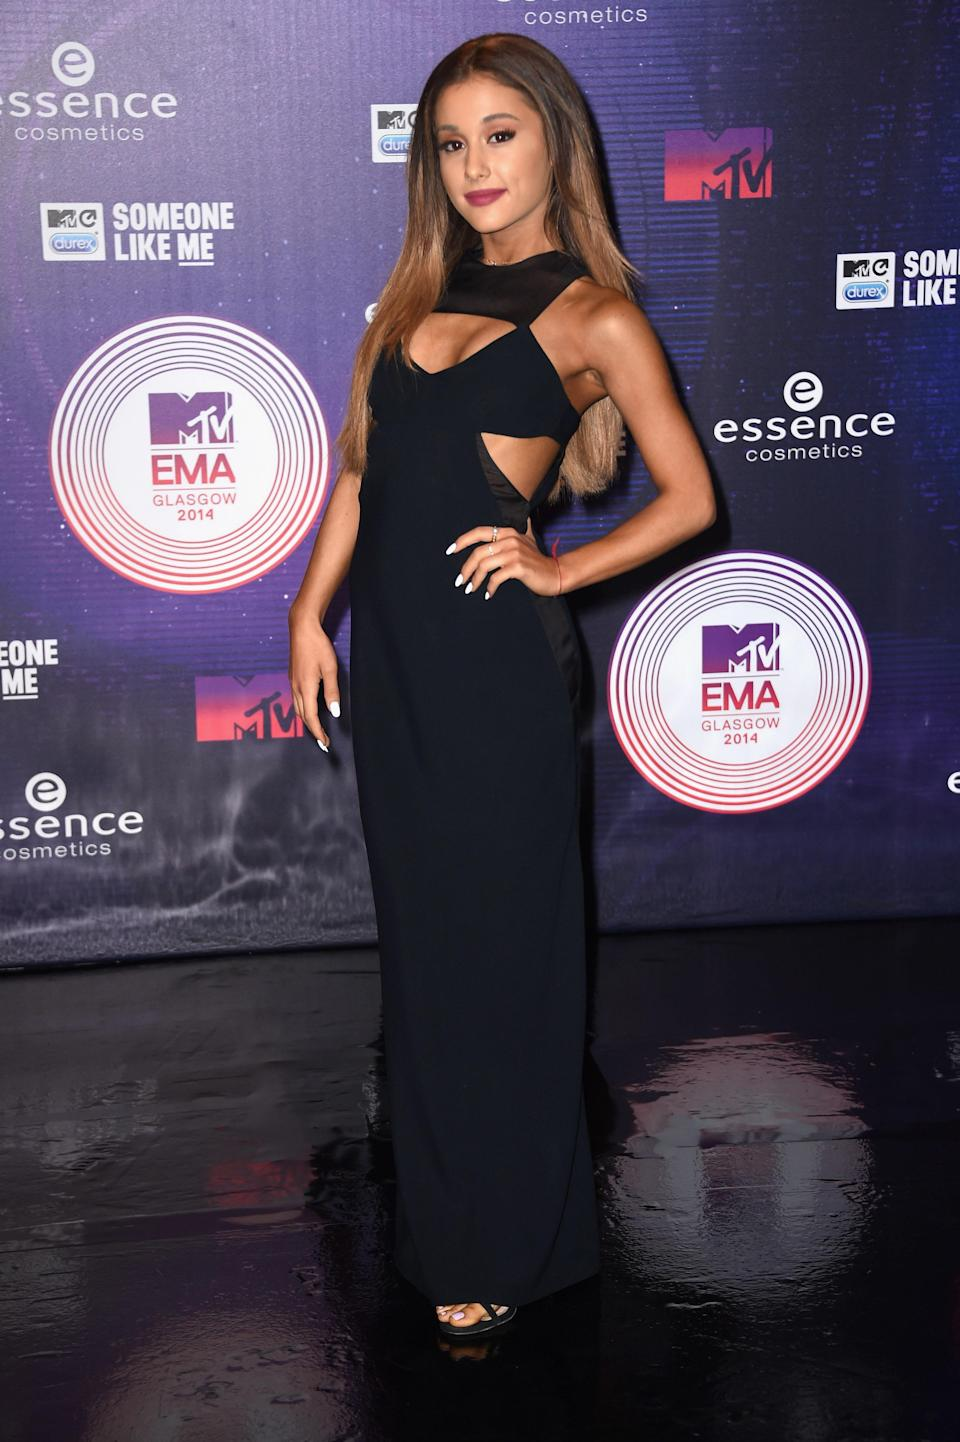 Over the years, Grande has embraced playing with different cuts and shapes that always hug her body in the right places. This black gown with geometric cutouts and mesh inserts she wore at the 2014 MTV EMA is no exception.